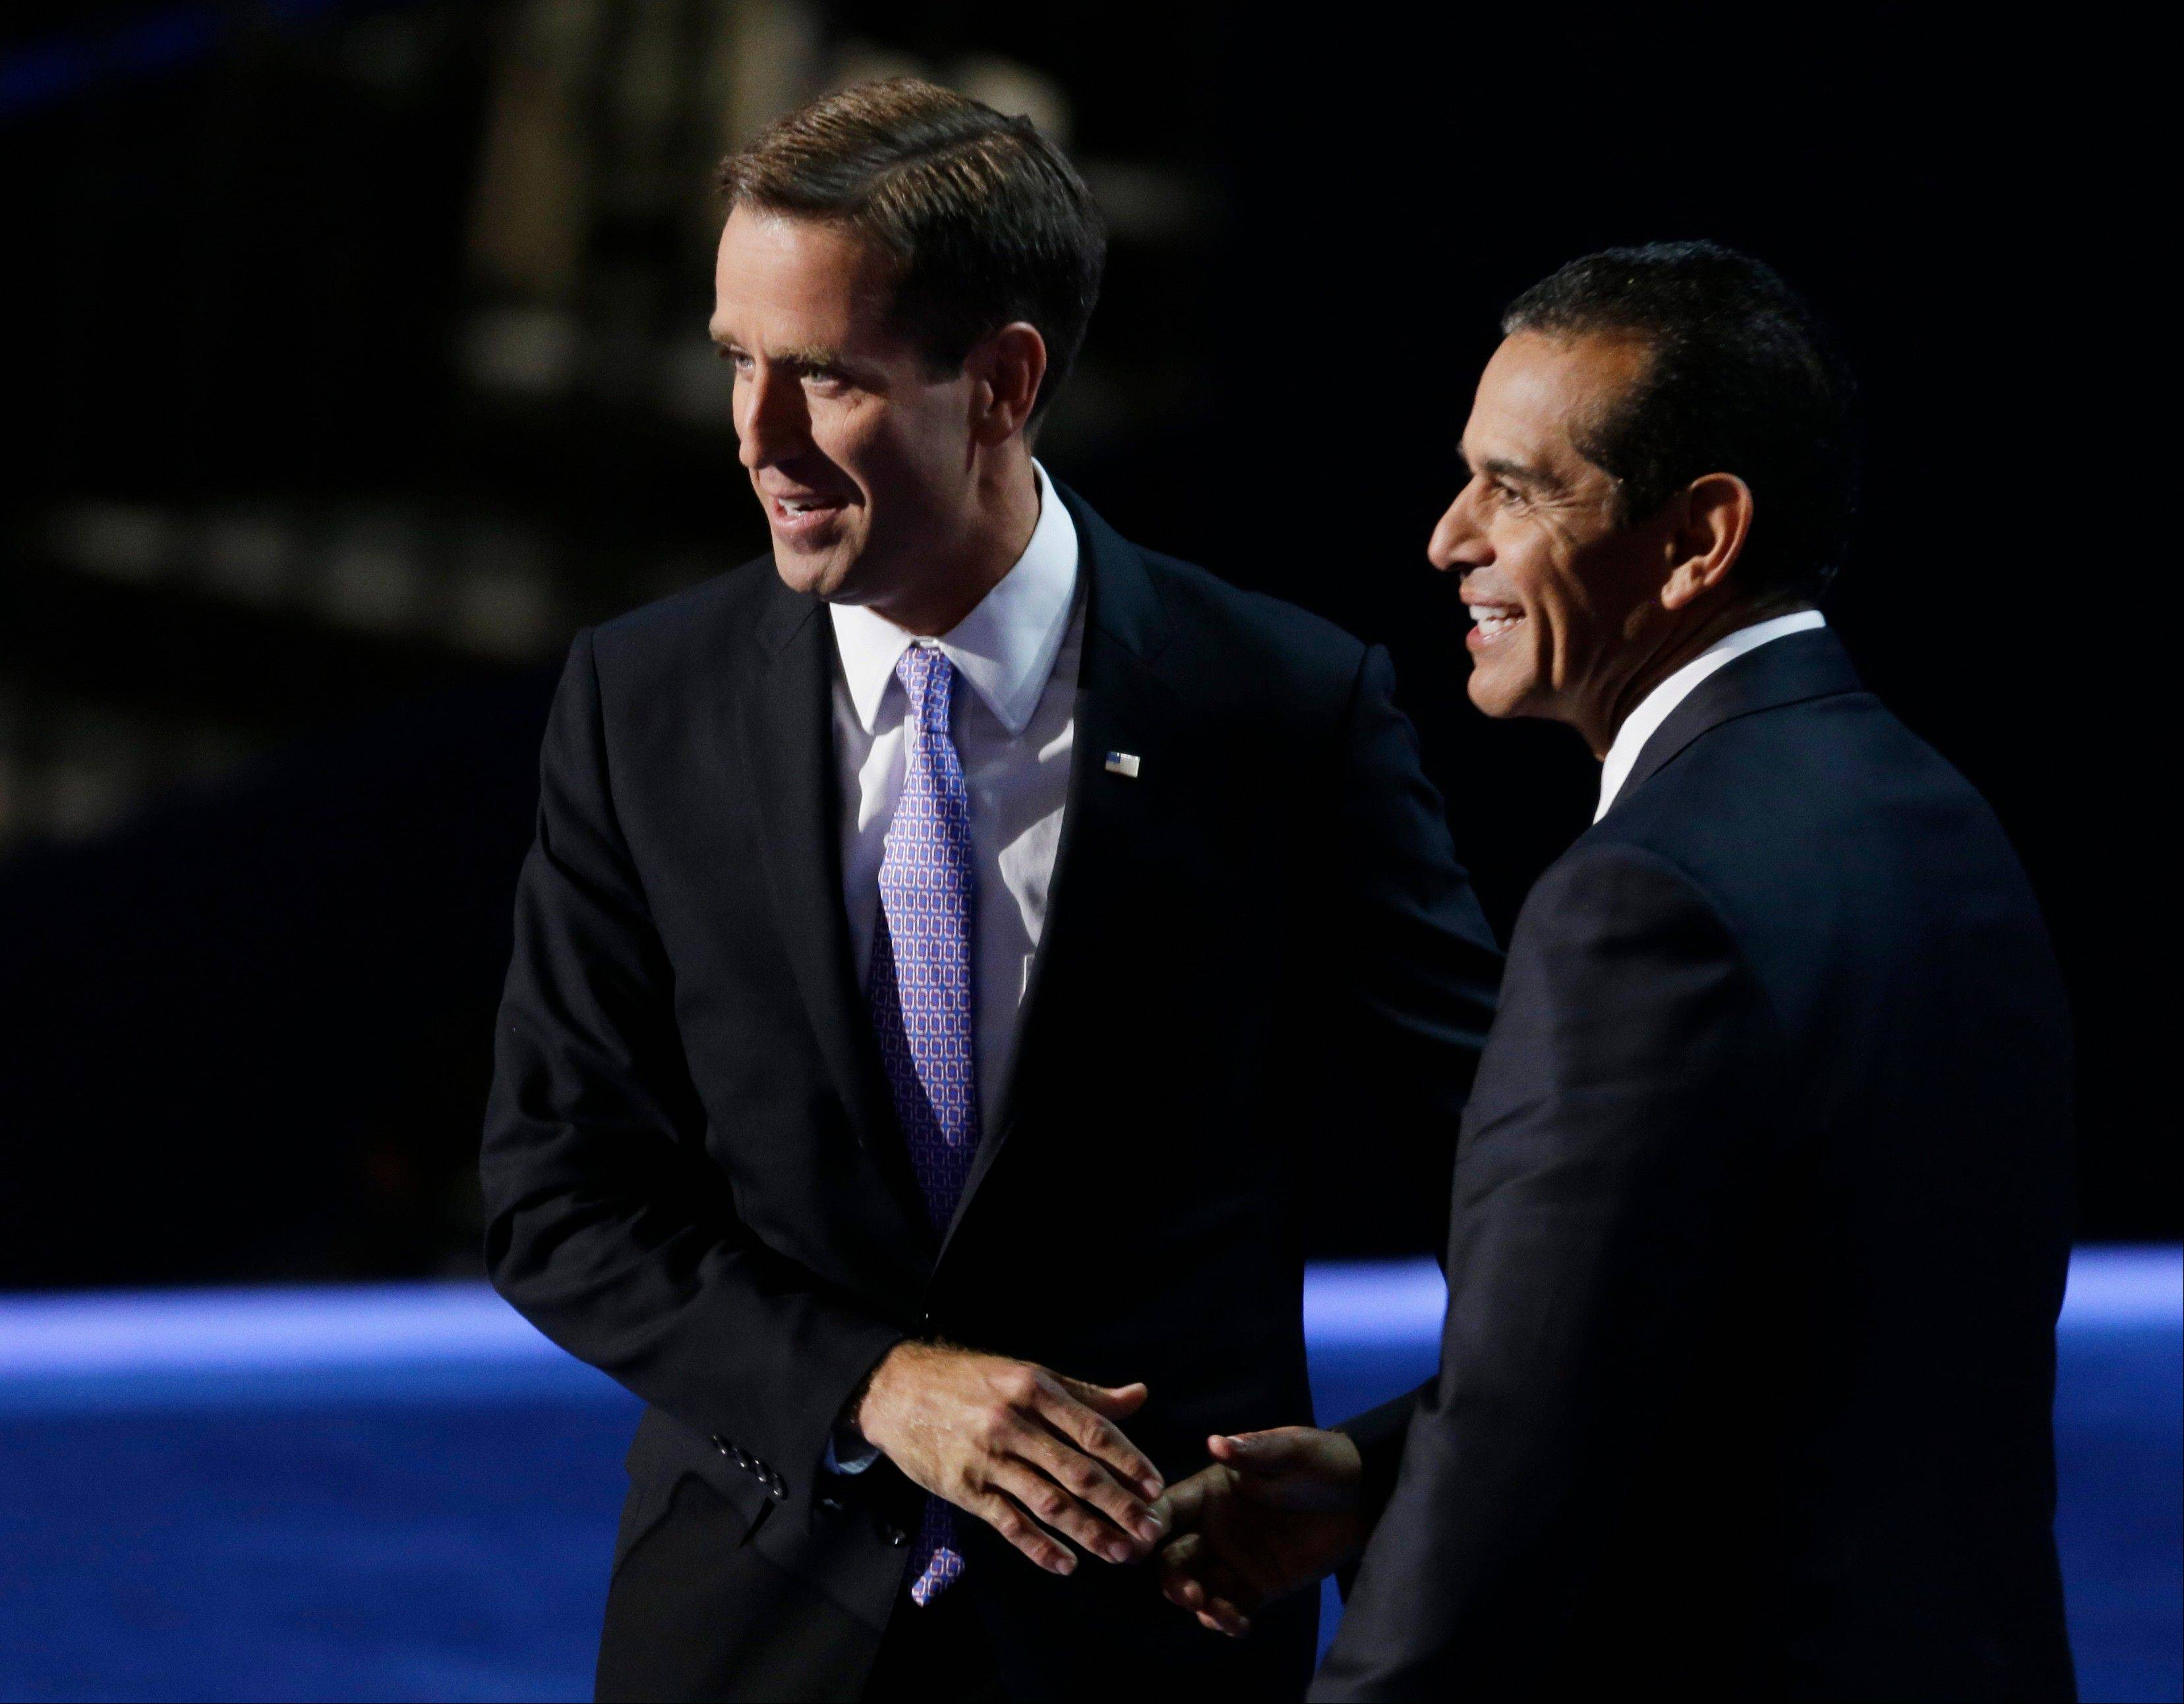 Los Angeles Mayor and Democratic Convention Chairman Antonio Villaraigosa, right, greets Beau Biden, attorney general of Delaware and son of Vice President Joe Biden, during the Democratic National Convention in Charlotte, N.C., on Thursday.